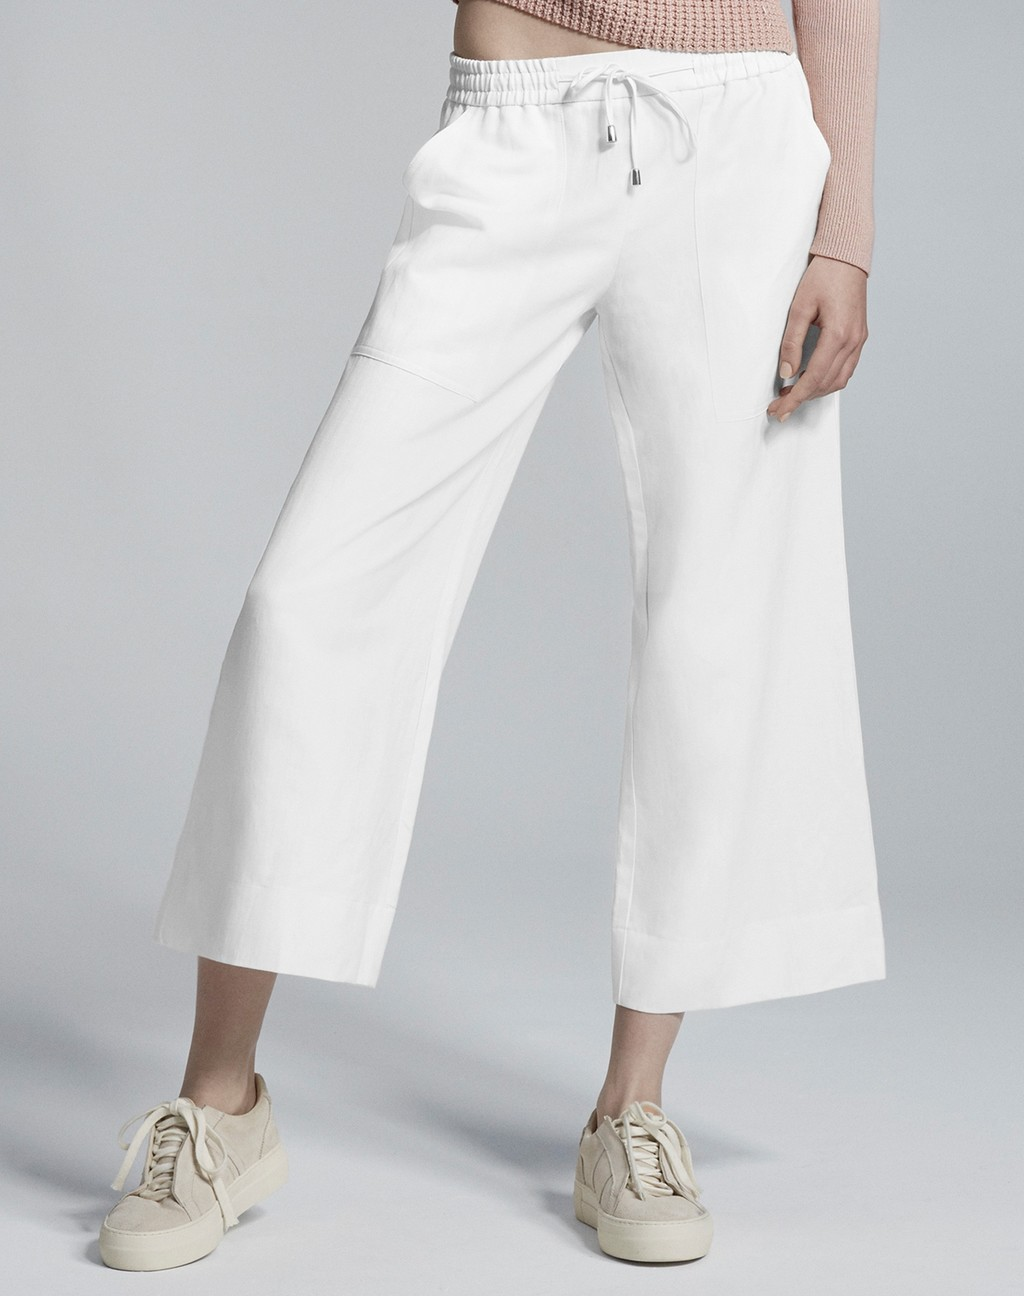 Summer Wide Leg Crop Soft White - pattern: plain; waist detail: belted waist/tie at waist/drawstring; waist: mid/regular rise; predominant colour: white; occasions: casual; length: calf length; fibres: linen - 100%; fit: wide leg; pattern type: fabric; texture group: woven light midweight; style: standard; season: s/s 2016